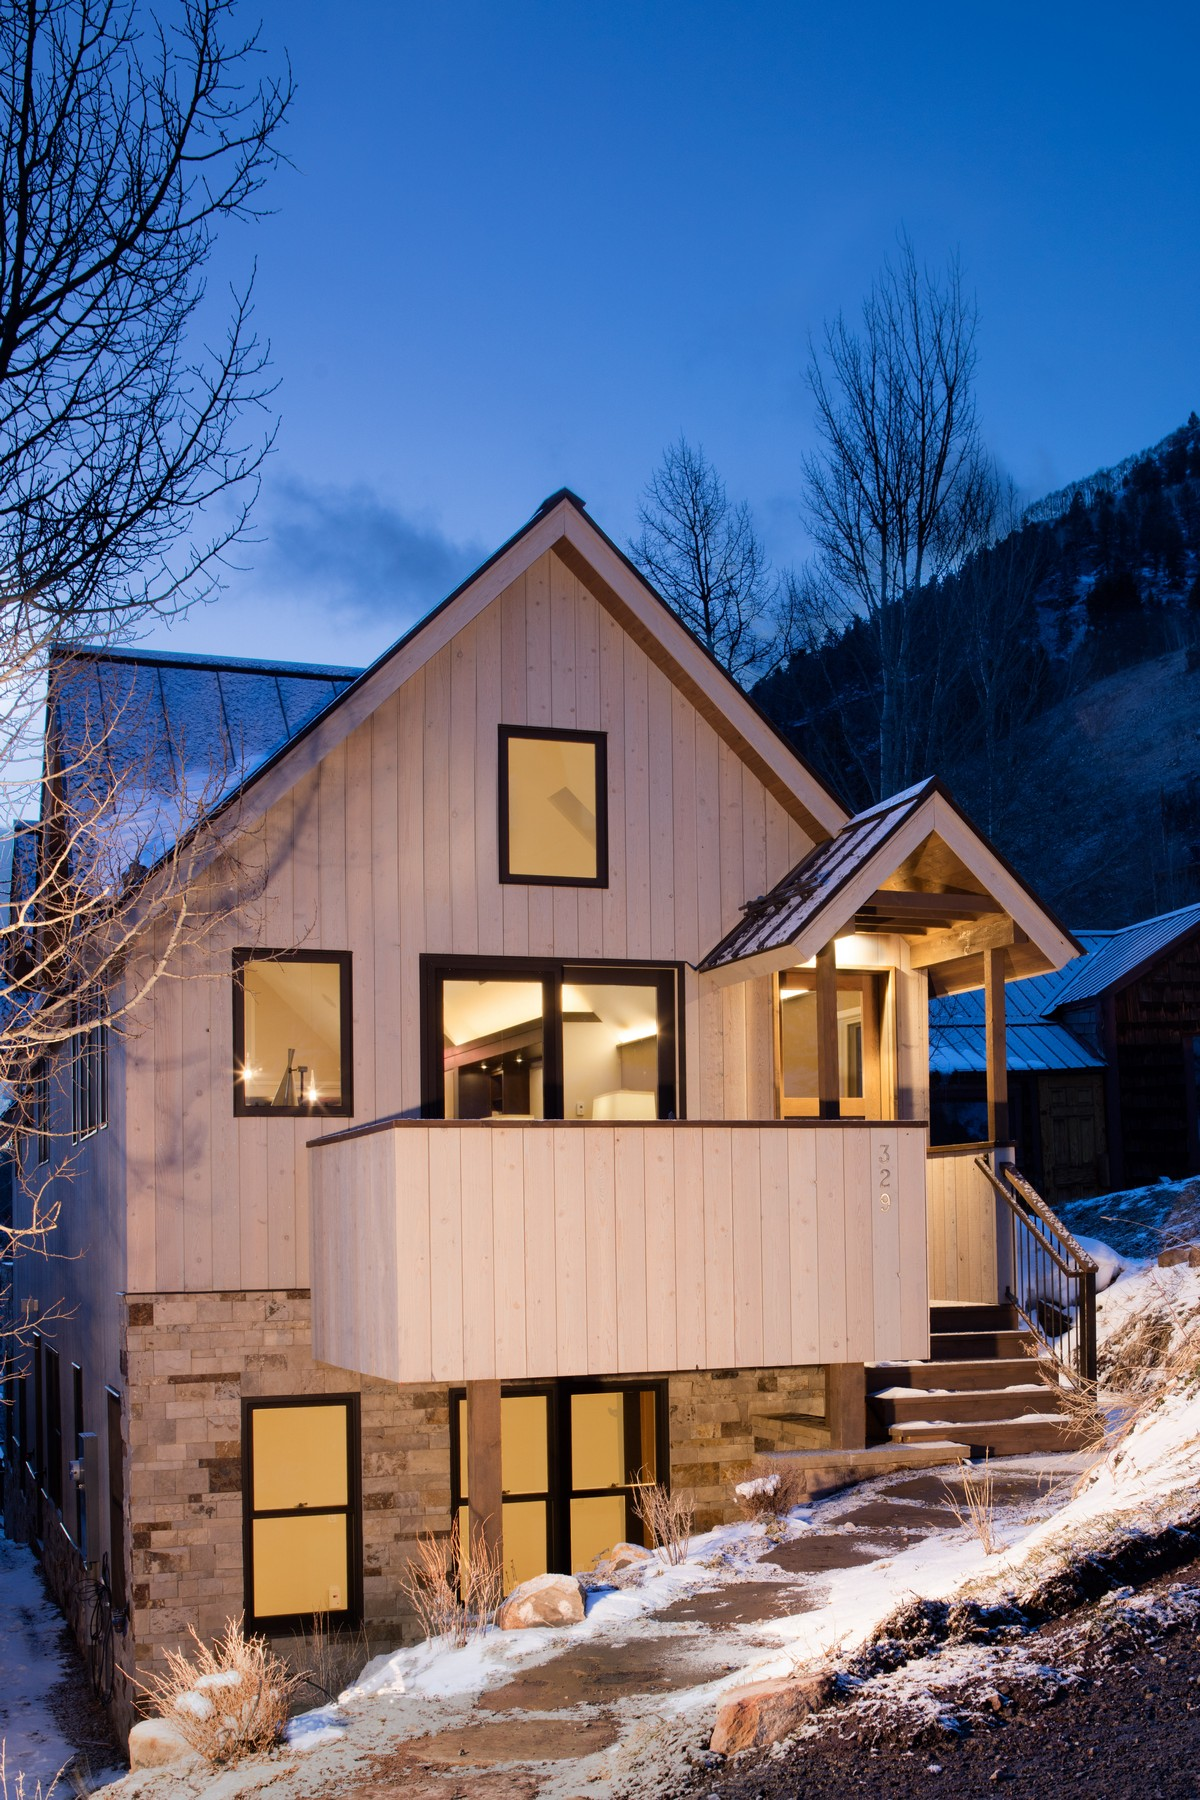 Single Family Home for Sale at 329 N. Willow Street Telluride, Colorado, 81435 United States